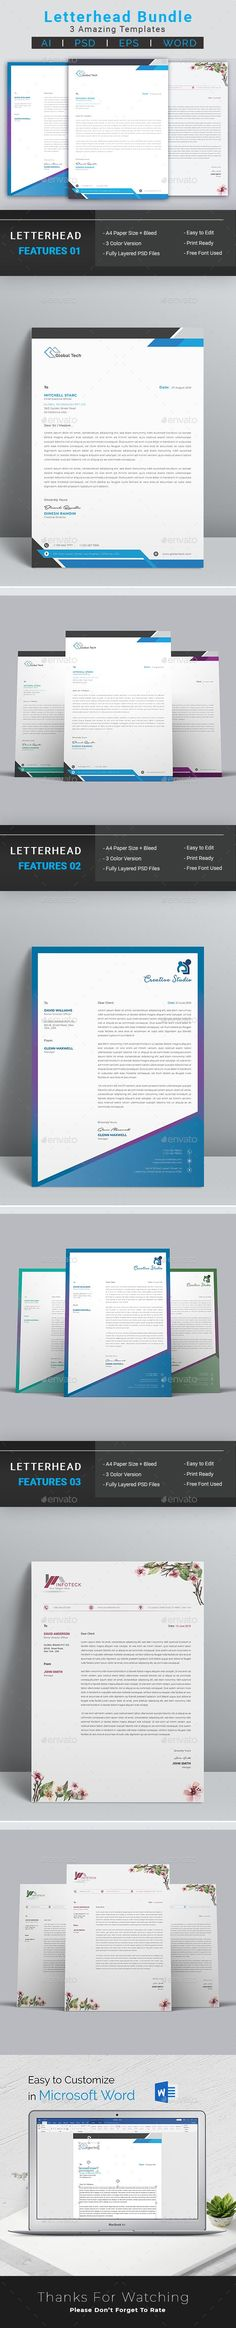 Buy Letterhead Bundle by DesignDevisers on GraphicRiver. Letterhead Bundle Letterhead Bundle it is a professional and clean work. The design has a great selection of high qua. Letterhead Design, Letterhead Template, Page Layout, Layouts, Change Image, Group Photos, Background Templates, Color Change, Photoshop